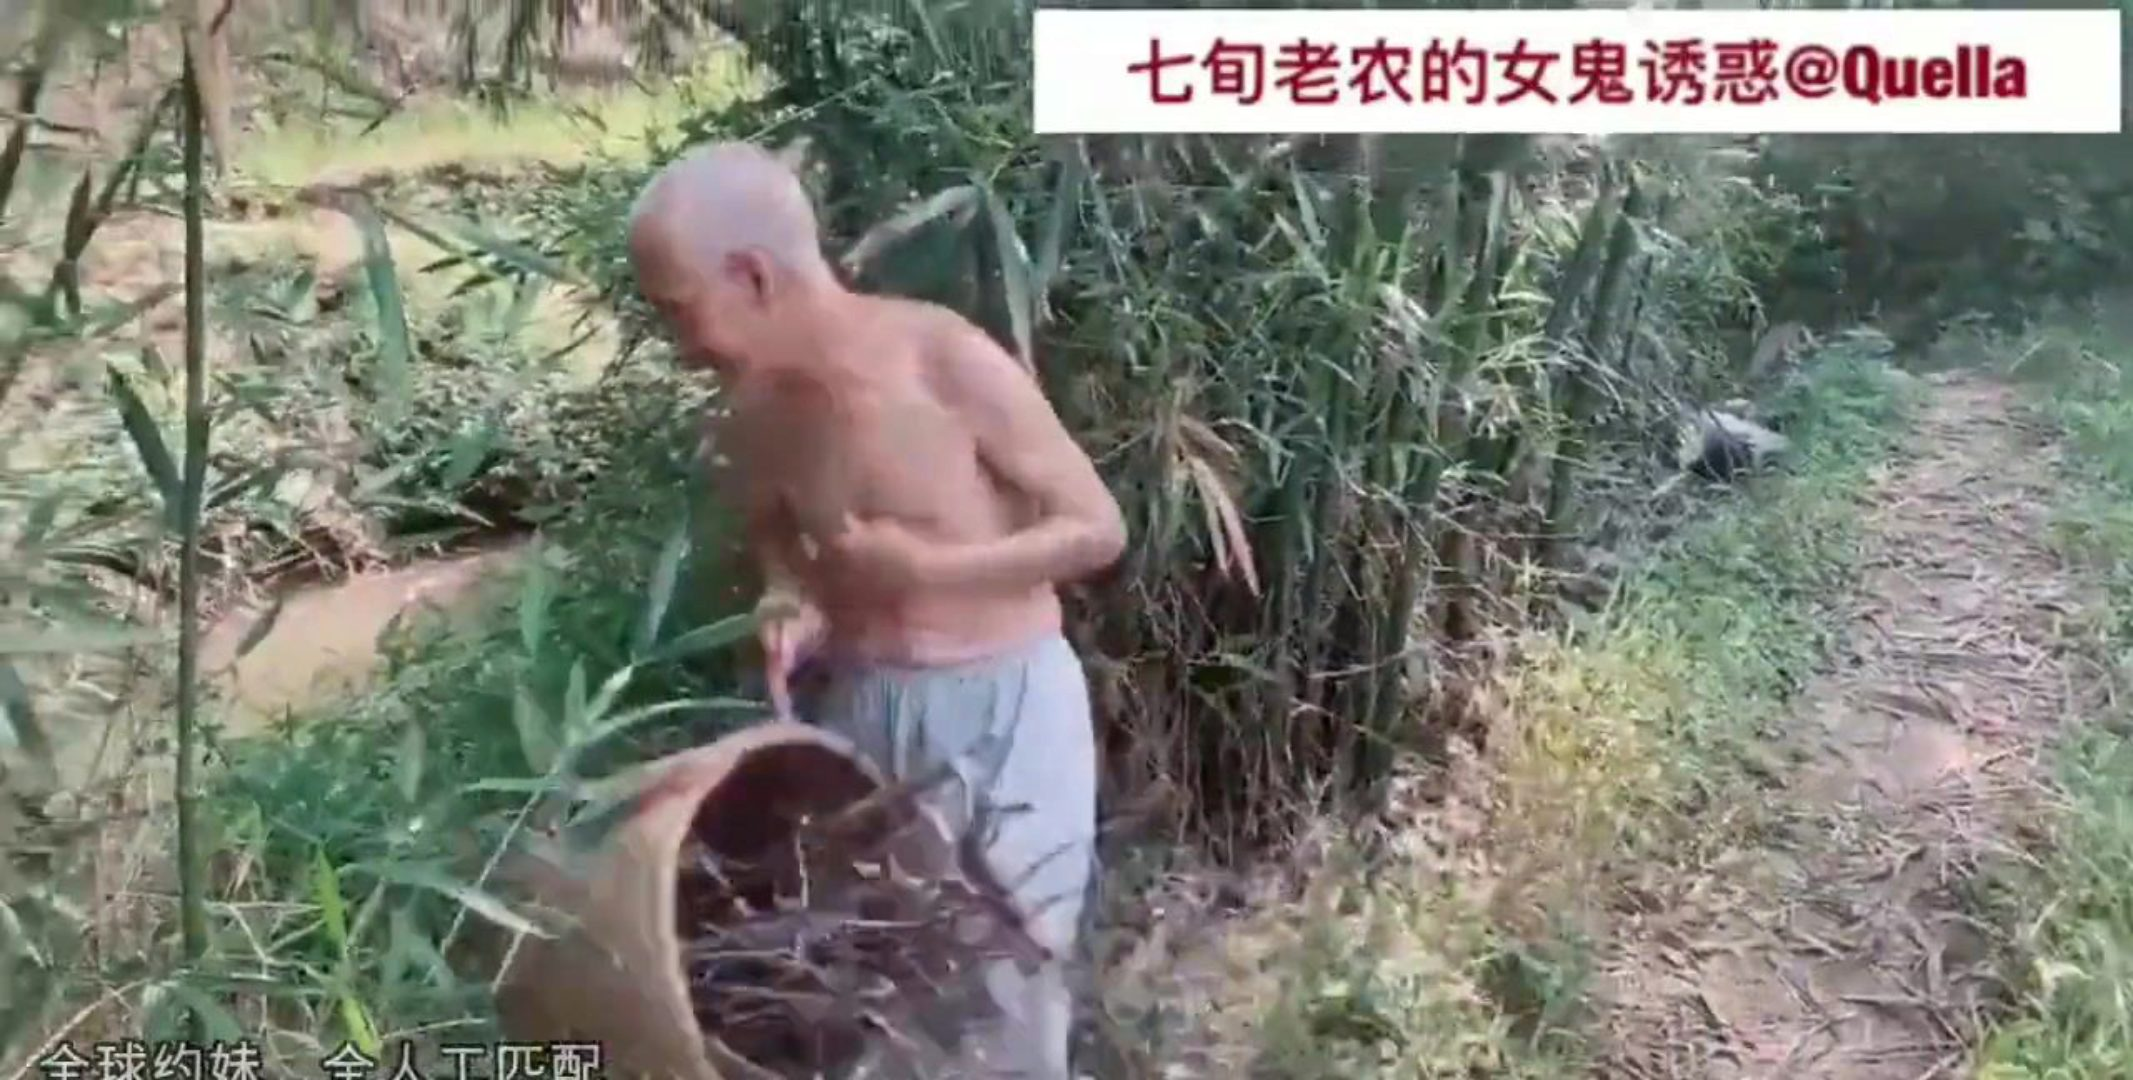 Adventure of the Elderly Chinese Av70, HD Porn 22: xHamster Watch Adventure of the Elderly Chinese Av70 video on xHamster, the giant HD orgy tube site with tons of free Asian Chinese Xxx & Old Asian pornography movie scenes